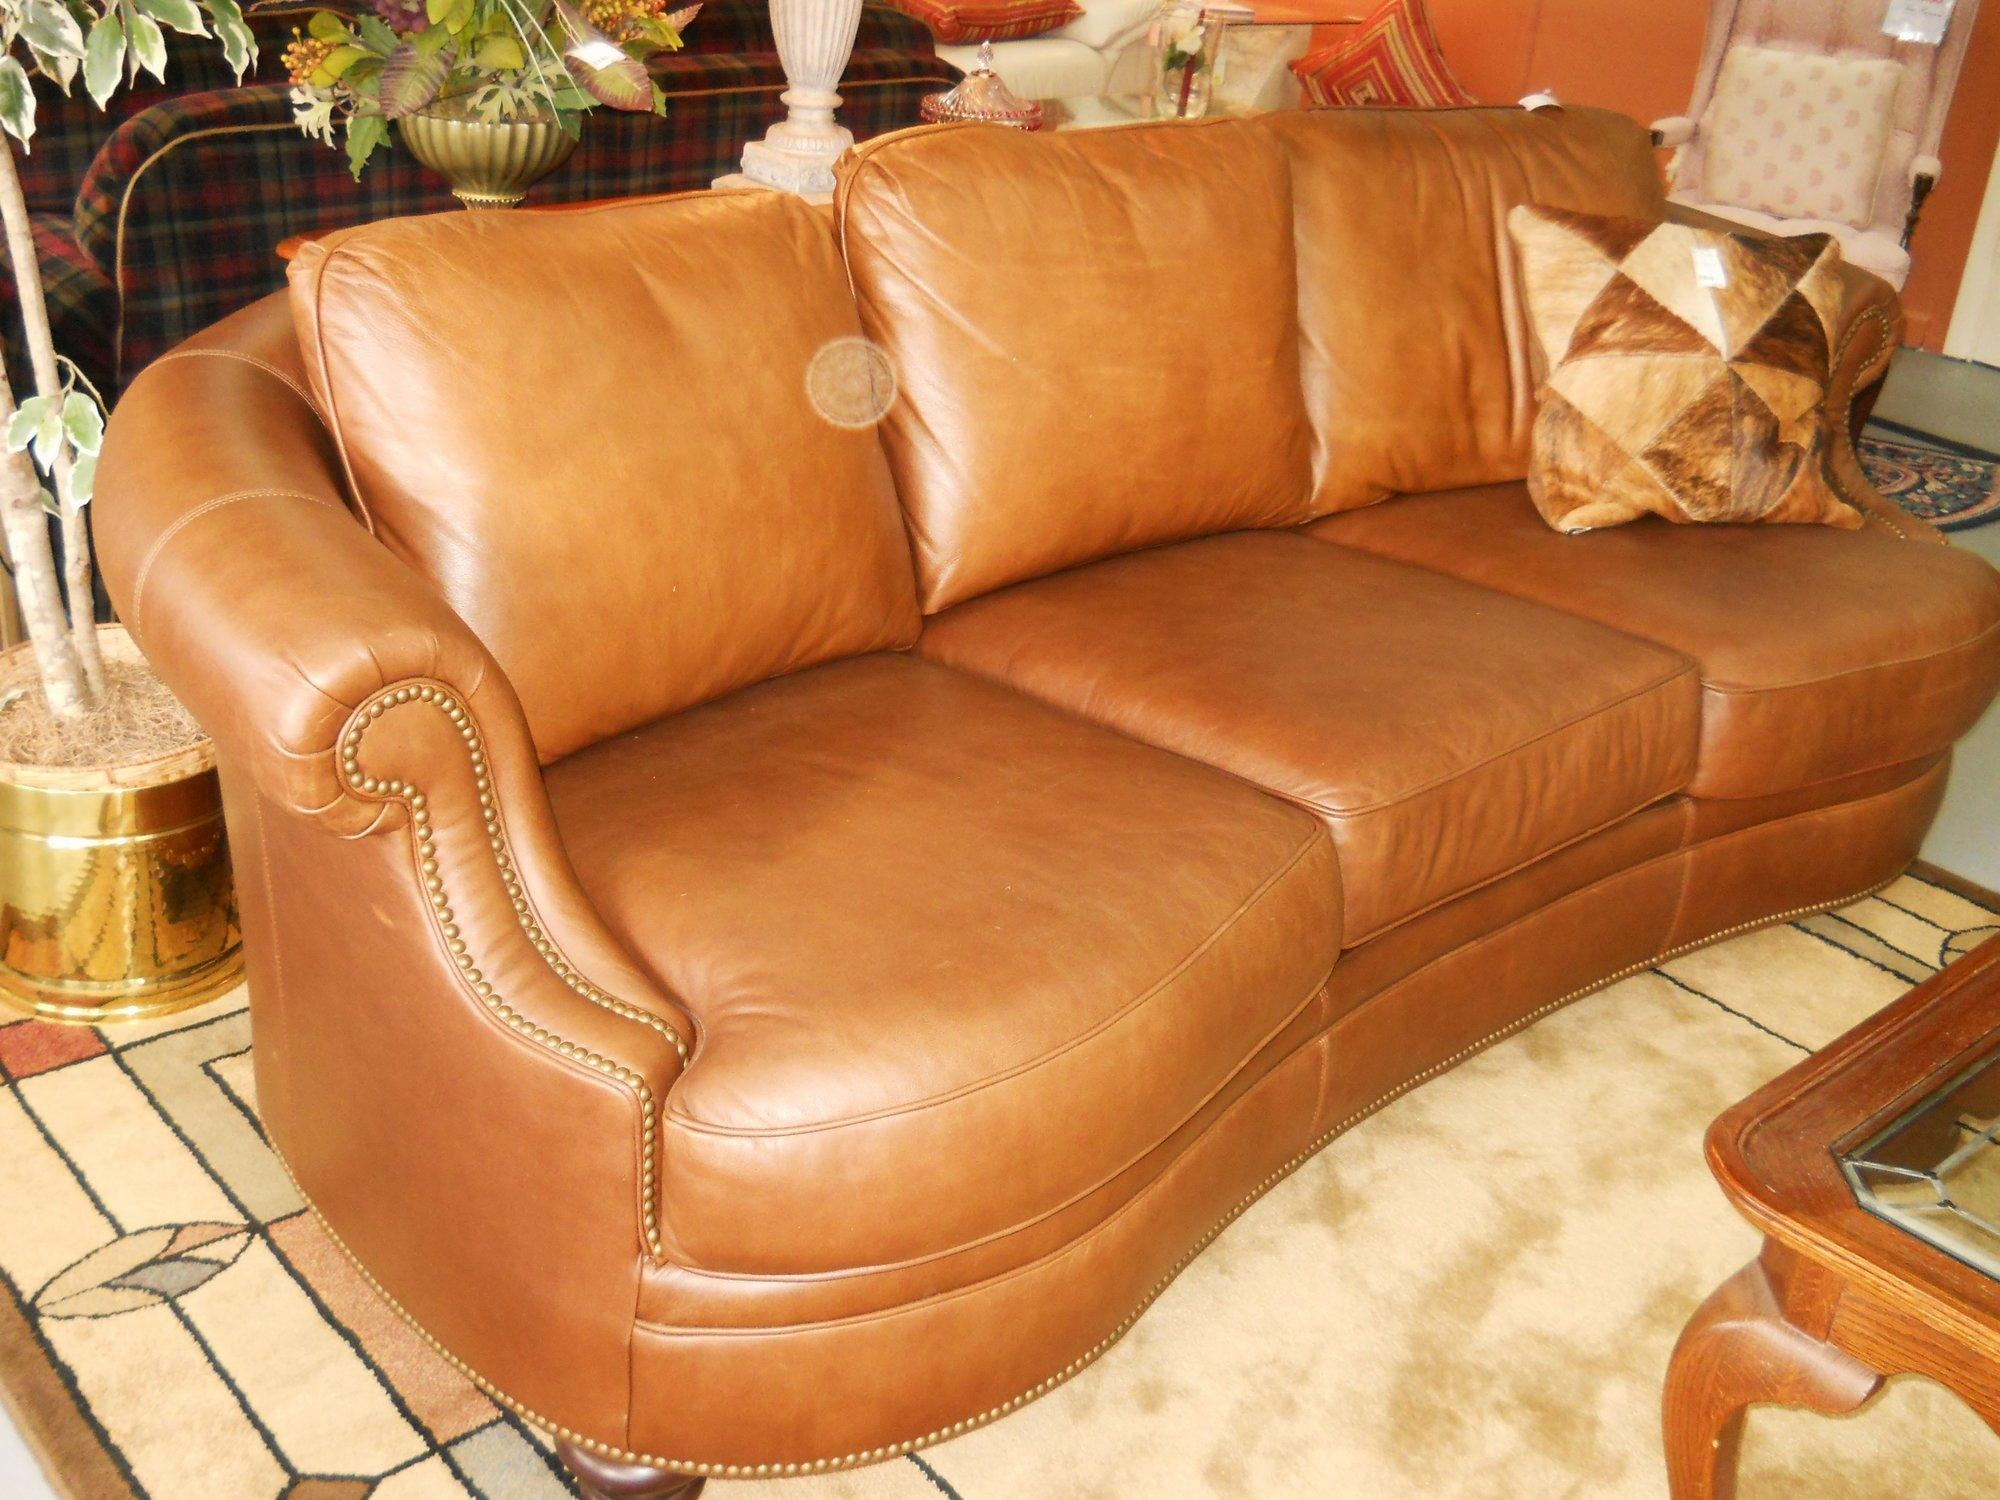 Camel Color Leather Couch – Brockhurststud Inside Camel Color Leather Sofas (View 5 of 20)